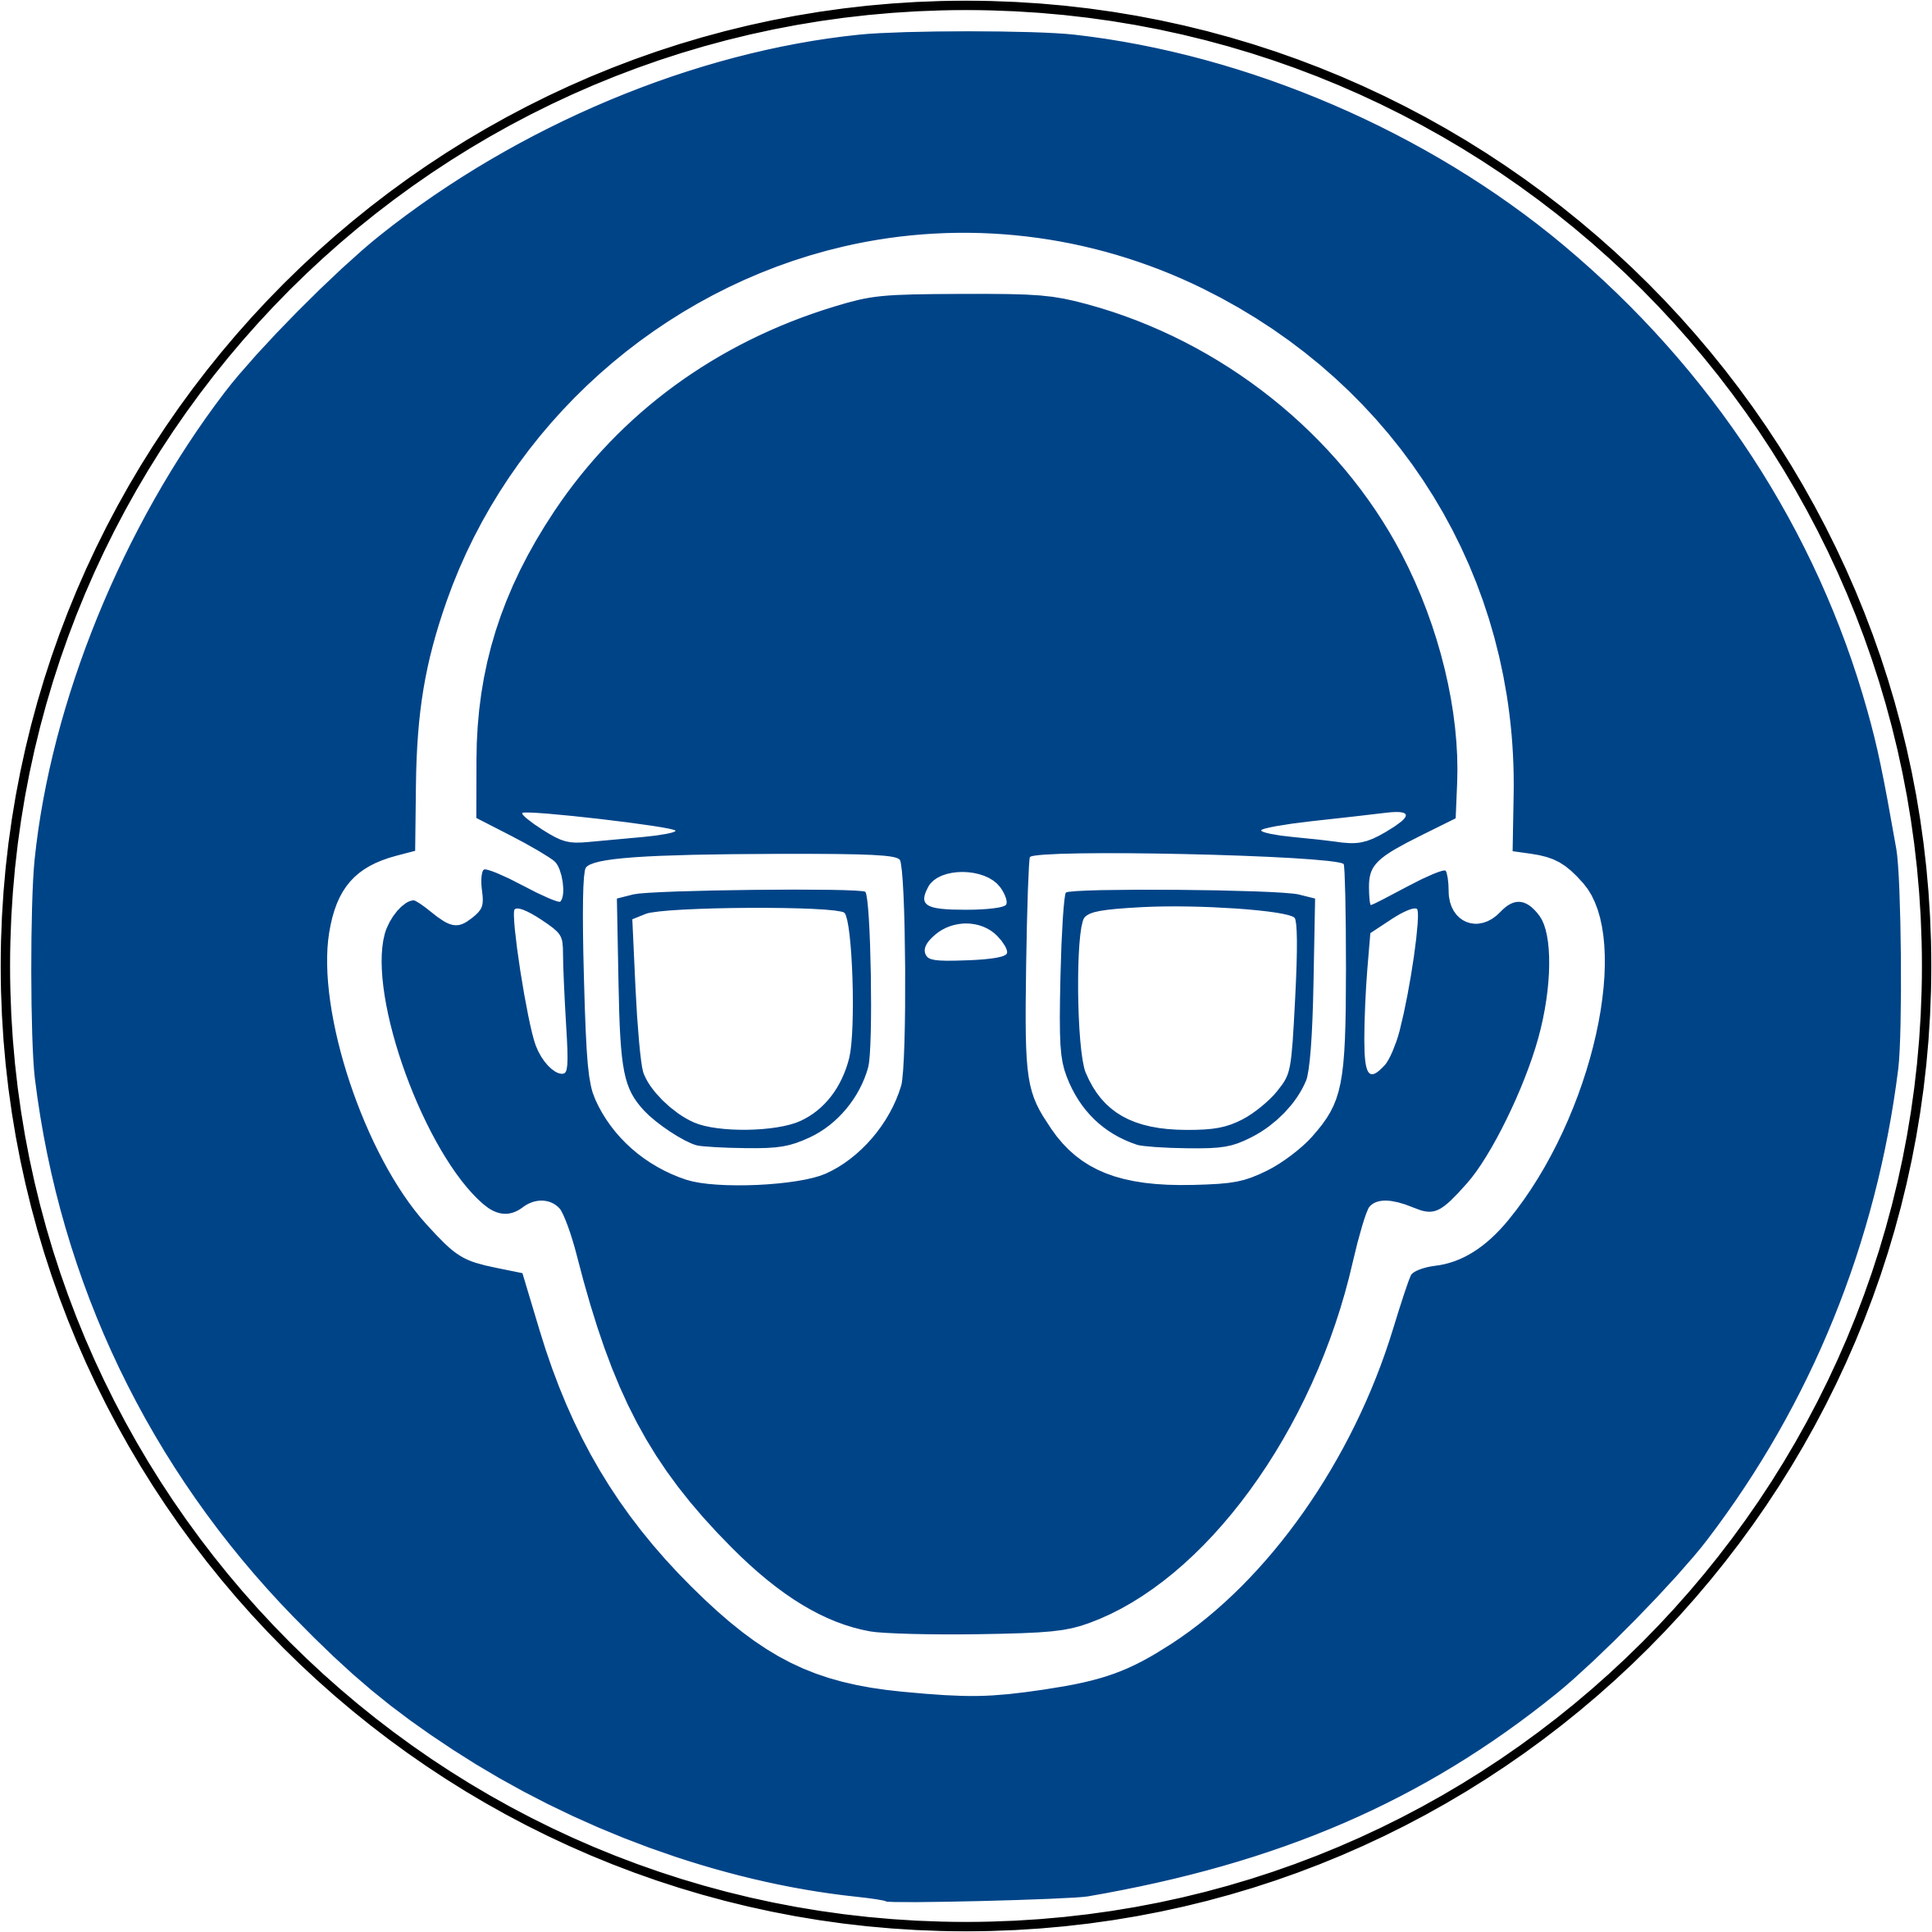 Protective wear big image. Goggles clipart cool eye